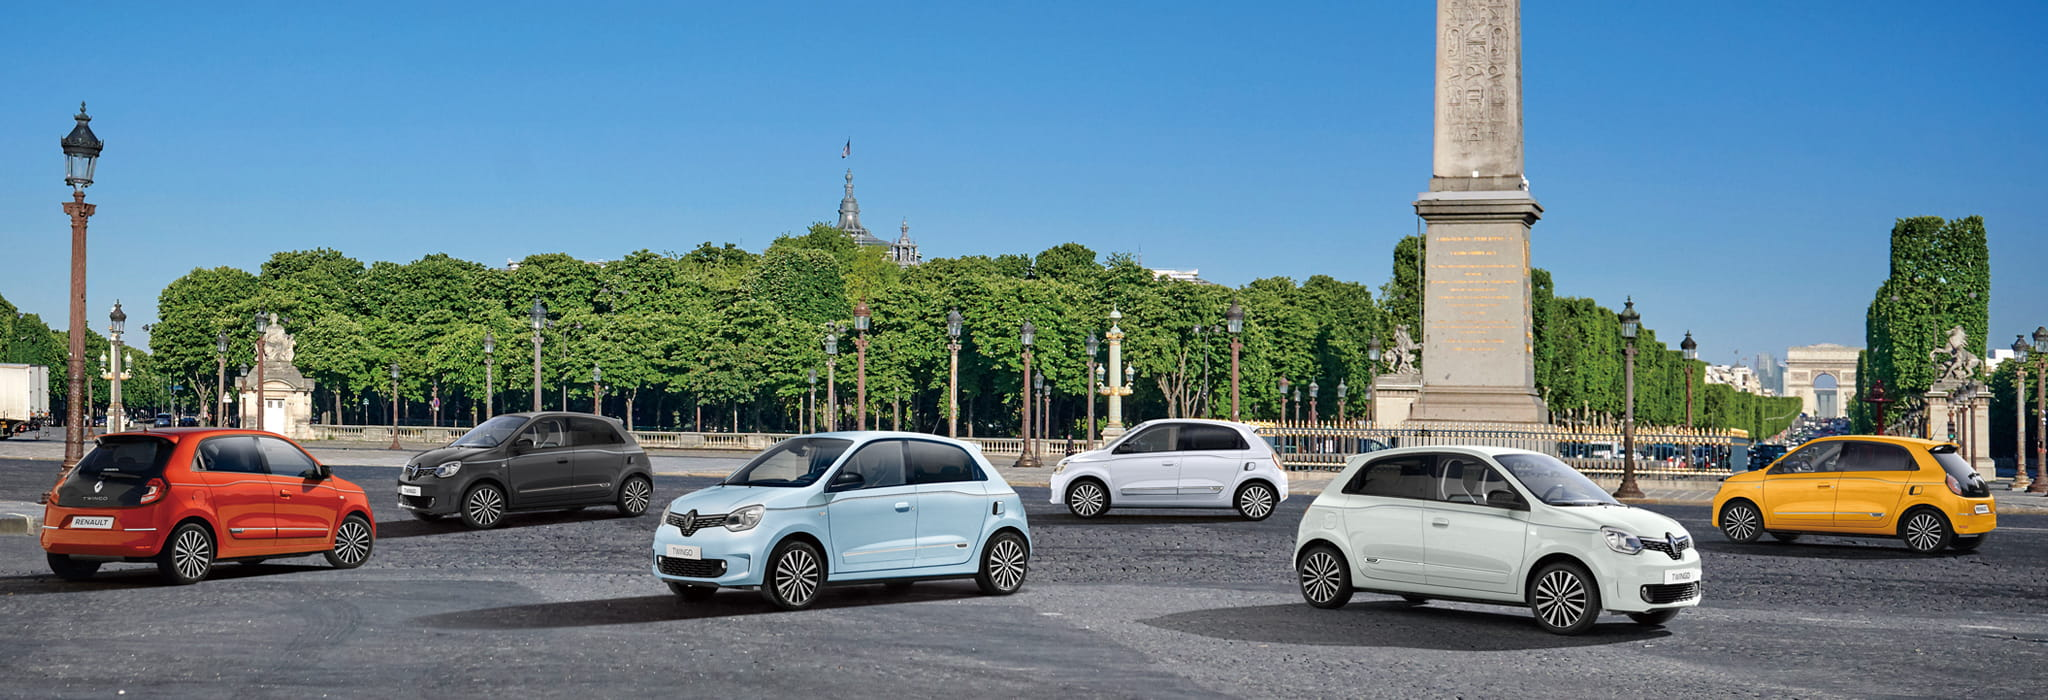 https://www.renault.jp/car_lineup/twingo/features/img/parisdesign/twingo_design_colour_01_ex.jpg